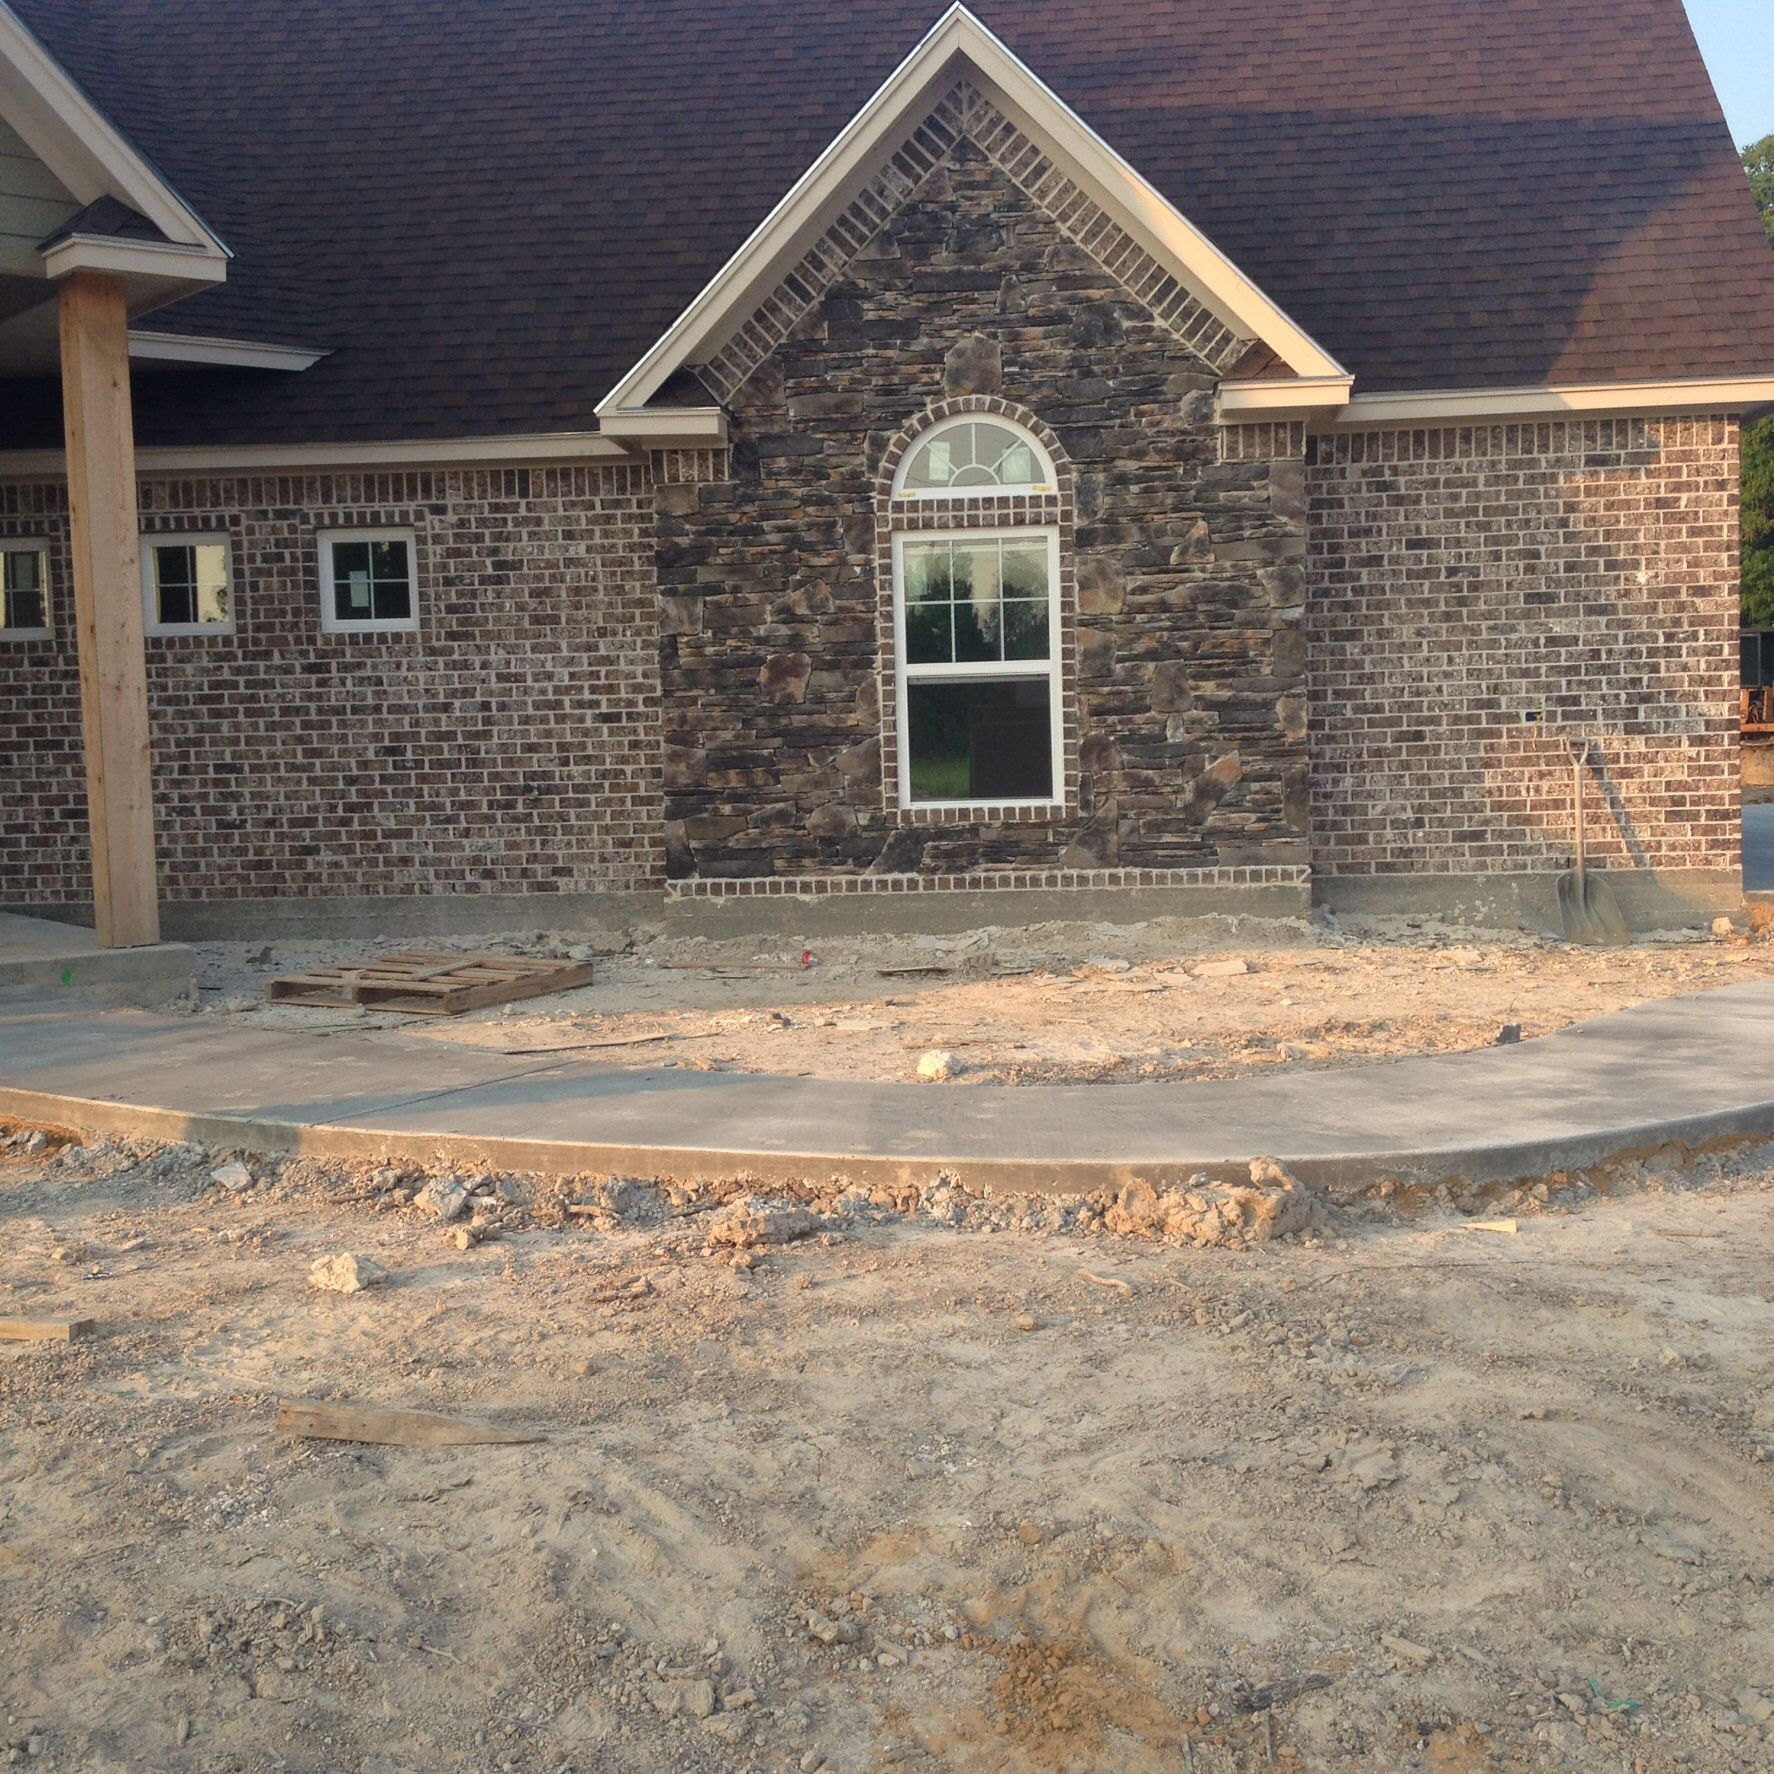 Stone Luxury Home Designs: Wolf Creek Stone With Ashton Brick Is A Beautiful